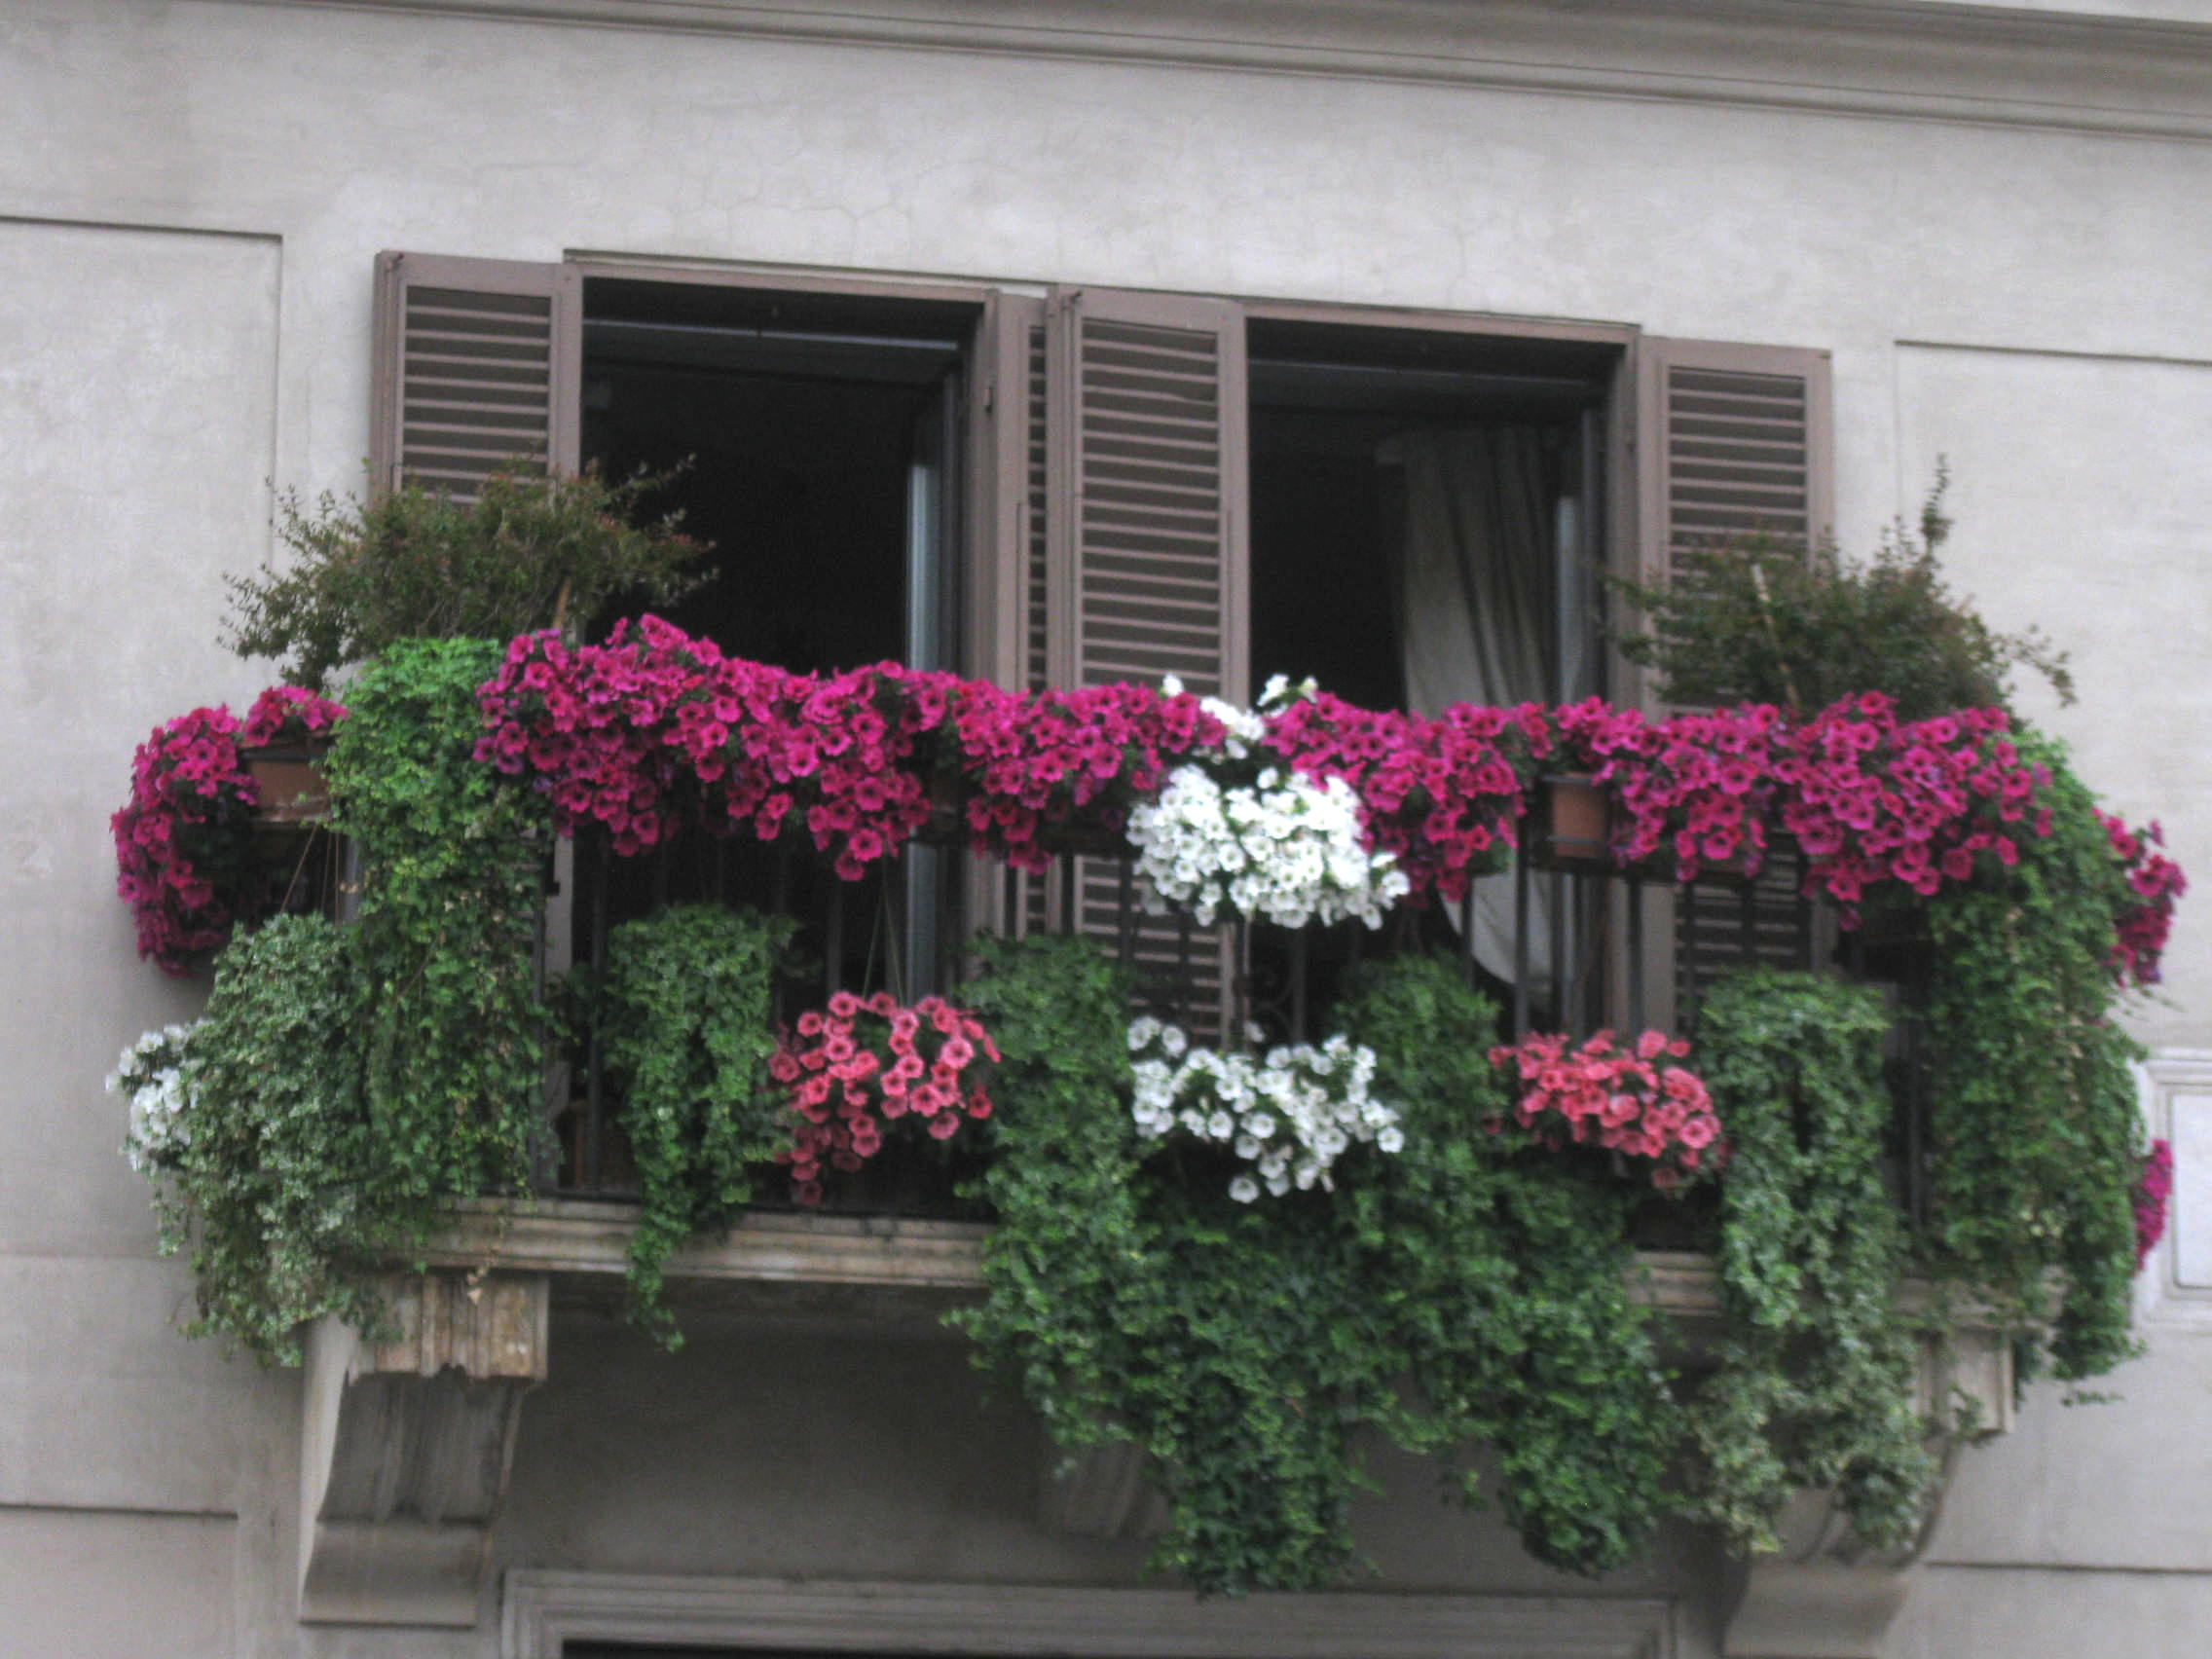 On a building behind the Fountain, a glorious floral display. Photo by Donn Brous.